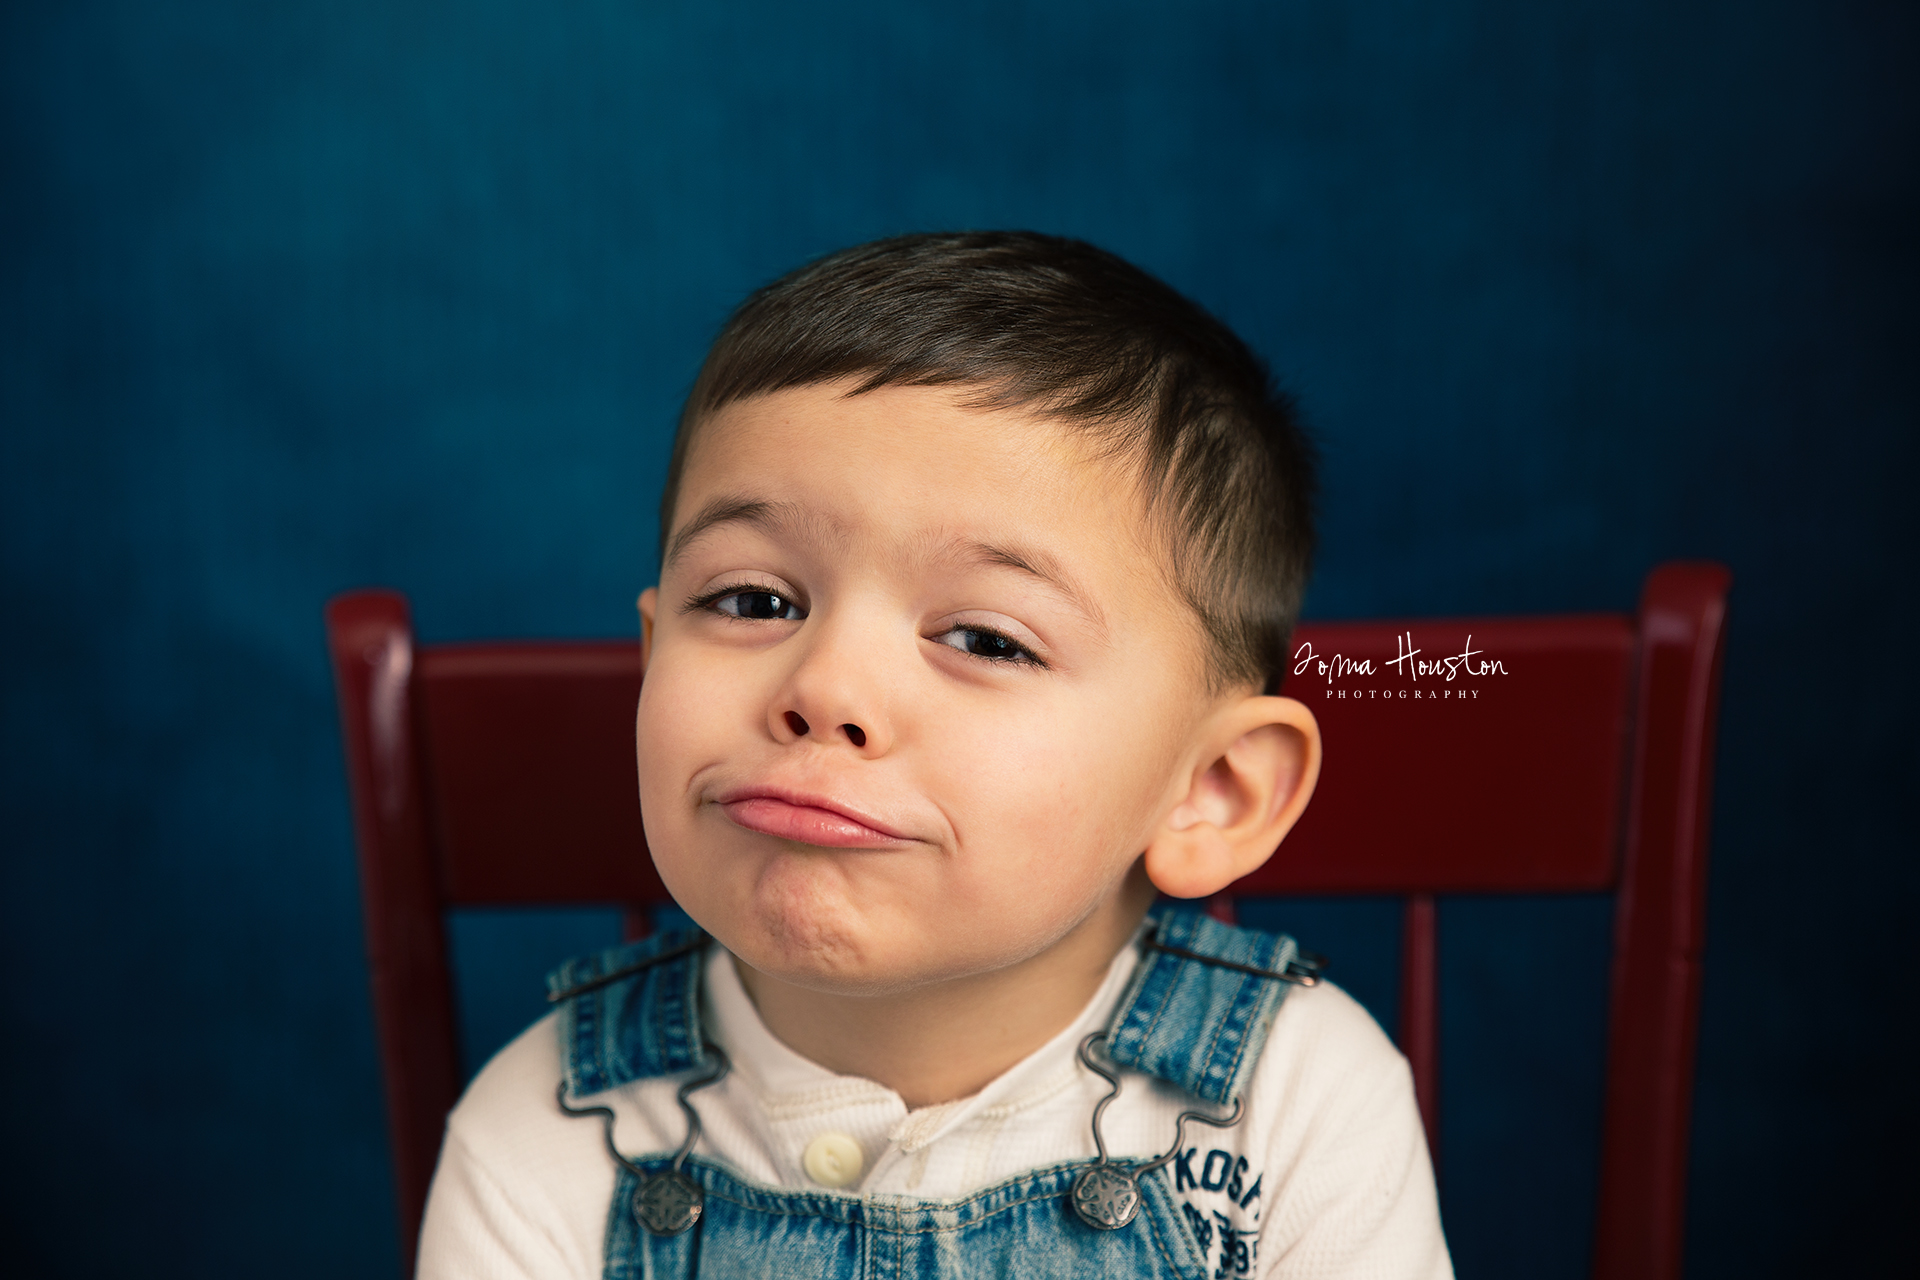 Children's Photographer Chicago | Toma Houston Photography